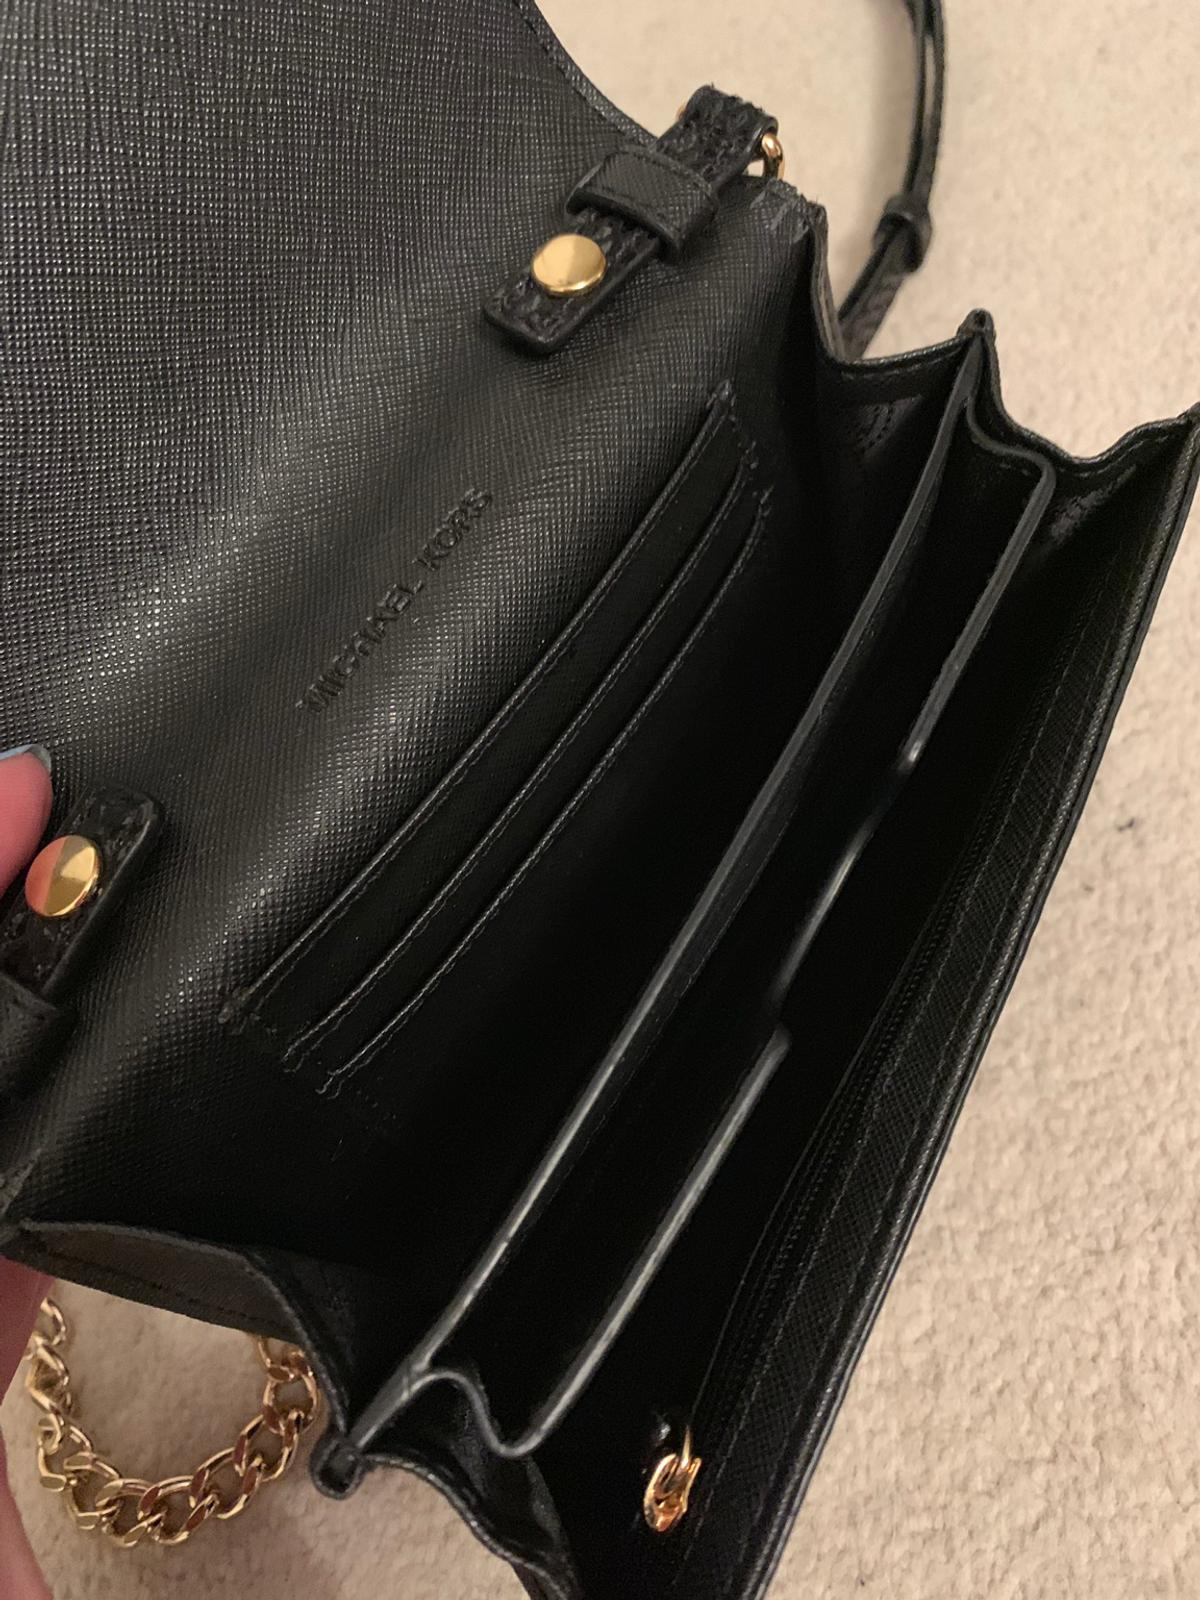 0cb0e7a53815 Genuine Michael Kors Clutch bag in B80-Avon for £40.00 for sale - Shpock